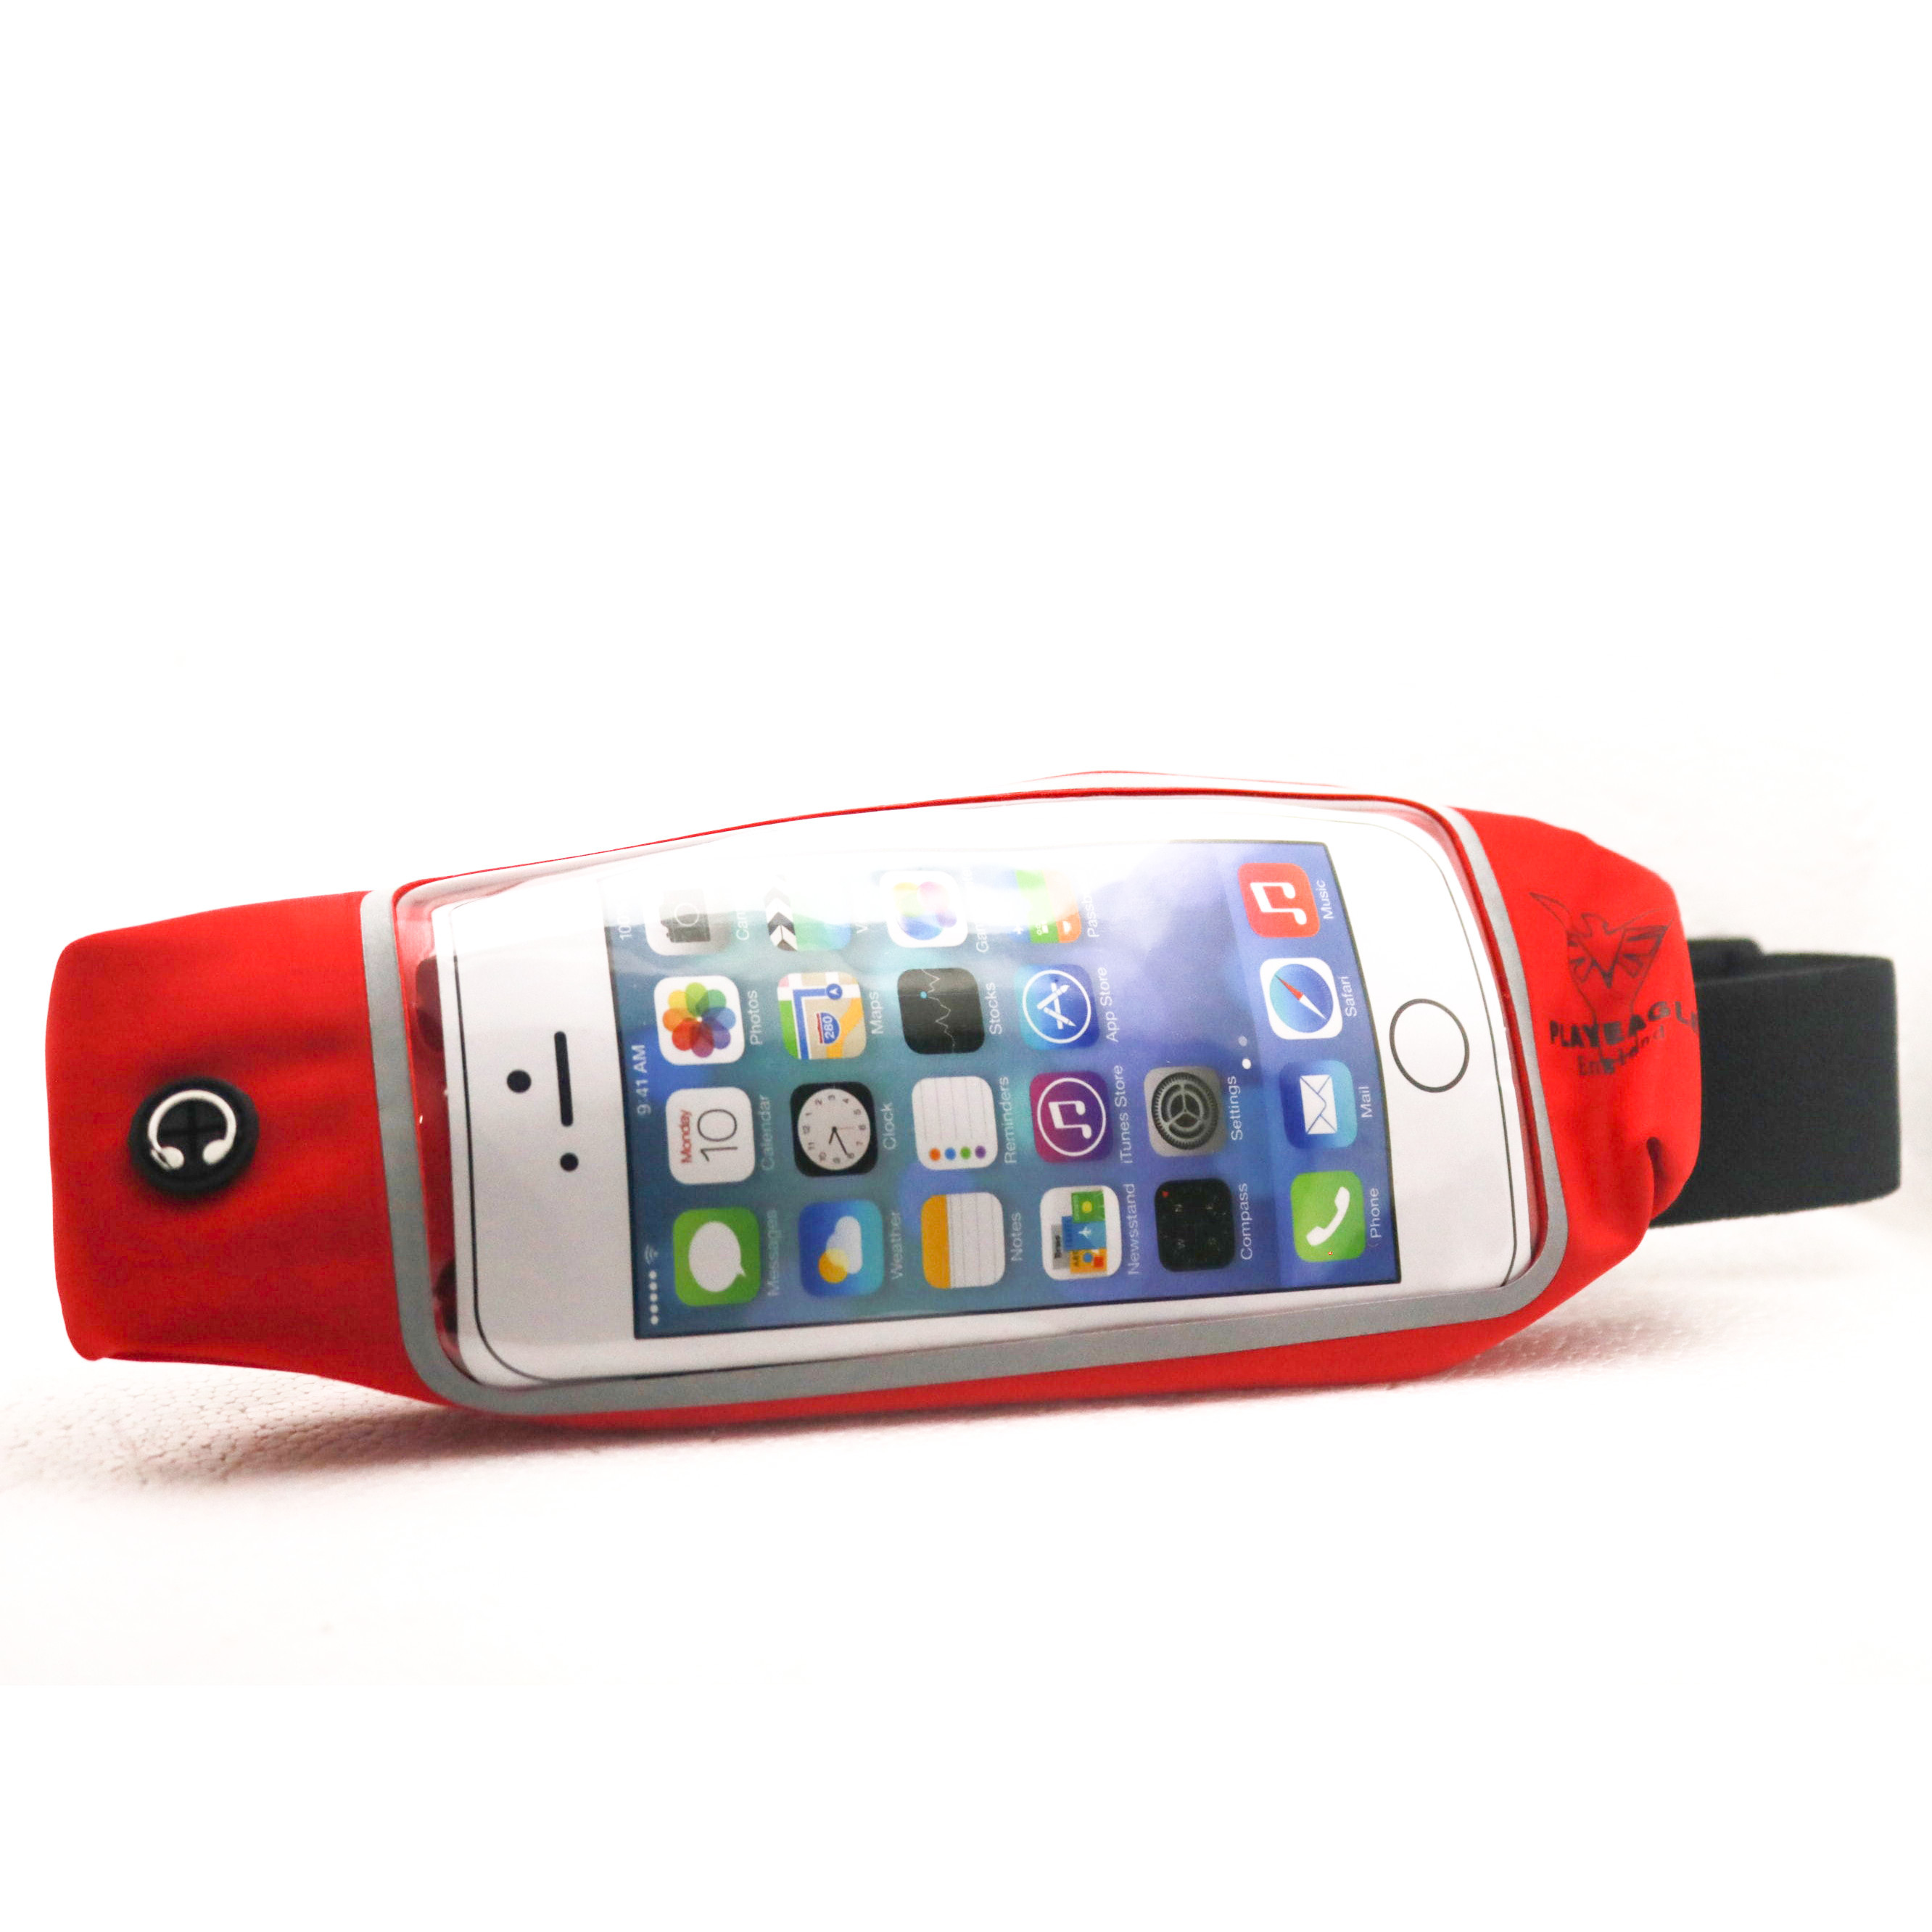 Phone cover - Waist (Red)